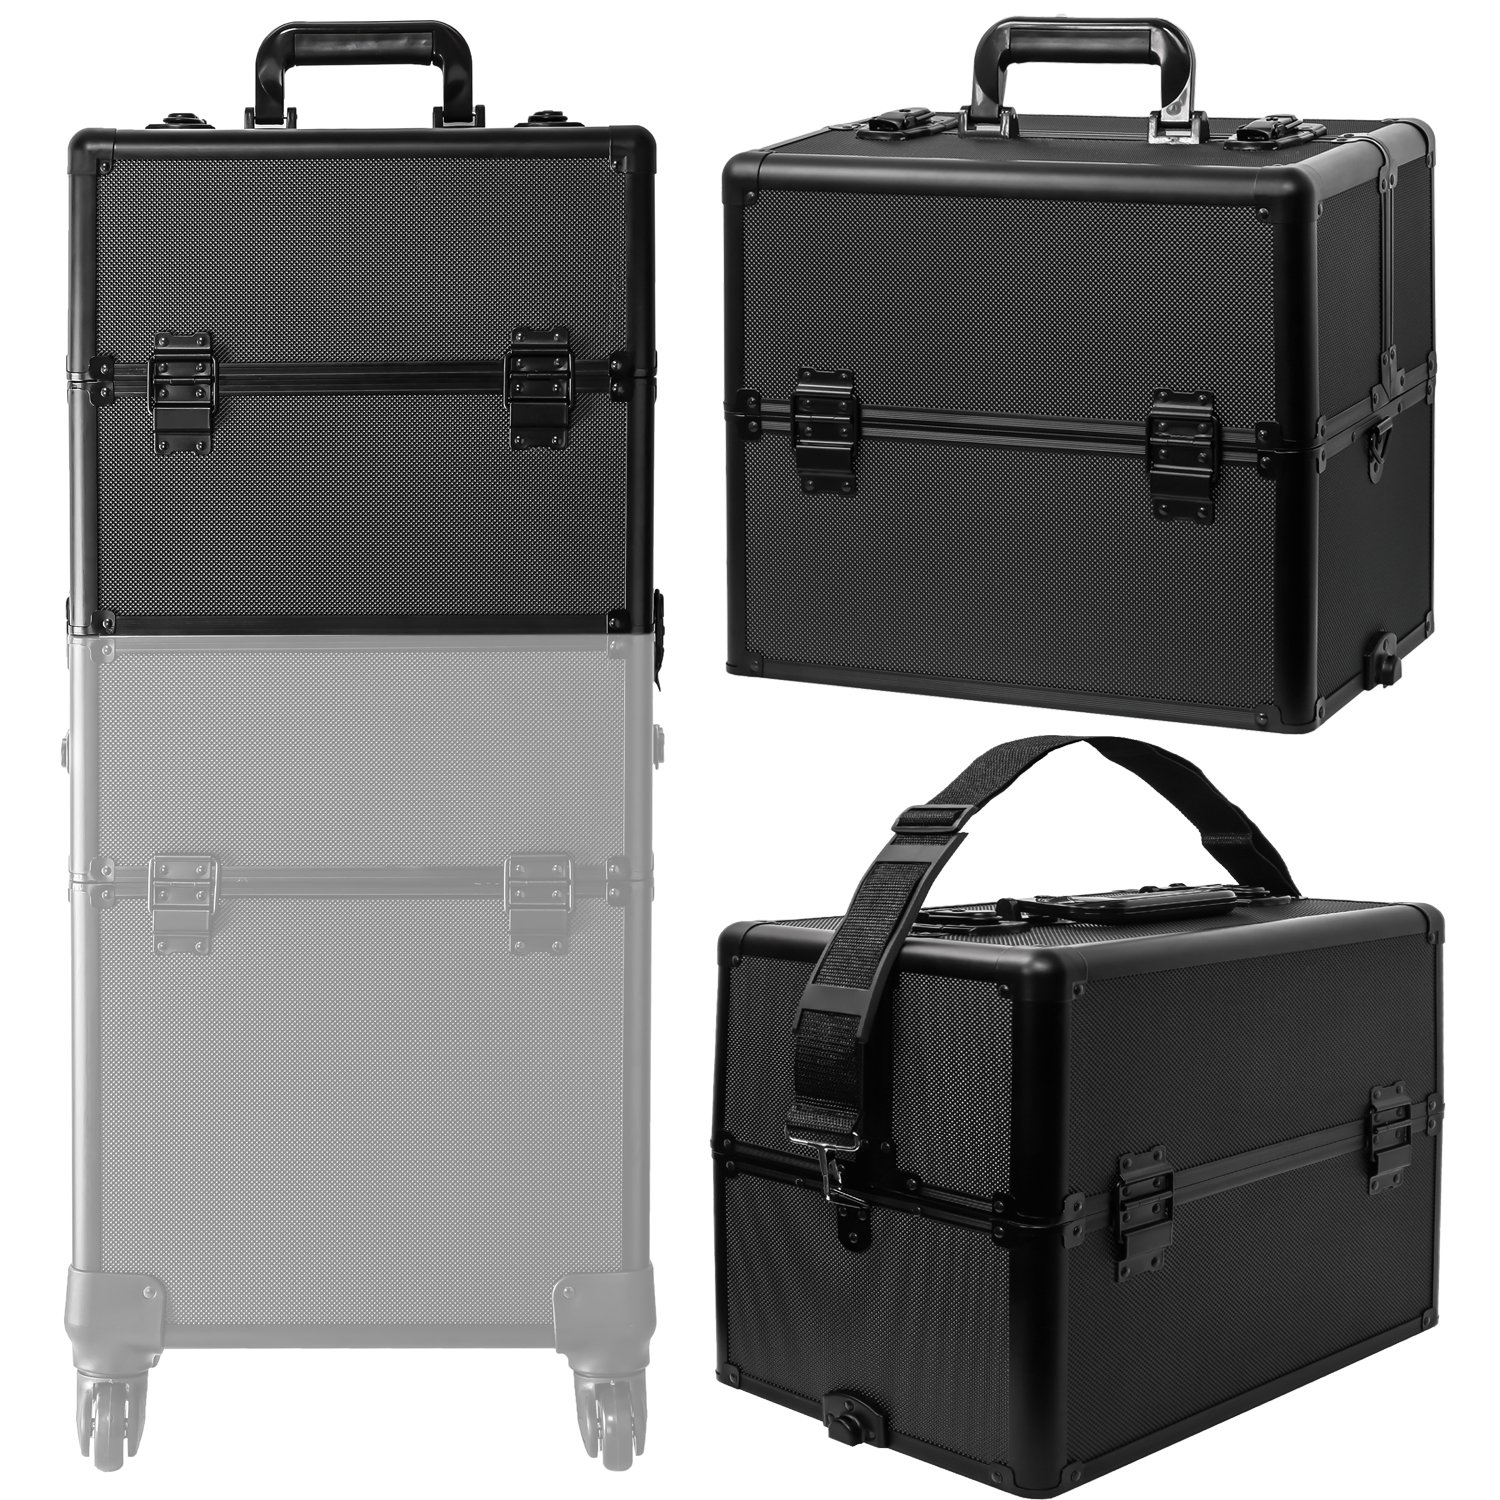 Koval Inc. 4-wheel Rolling 2in1 Makeup Train Cosmetic Case Black by KOVAL INC. (Image #5)